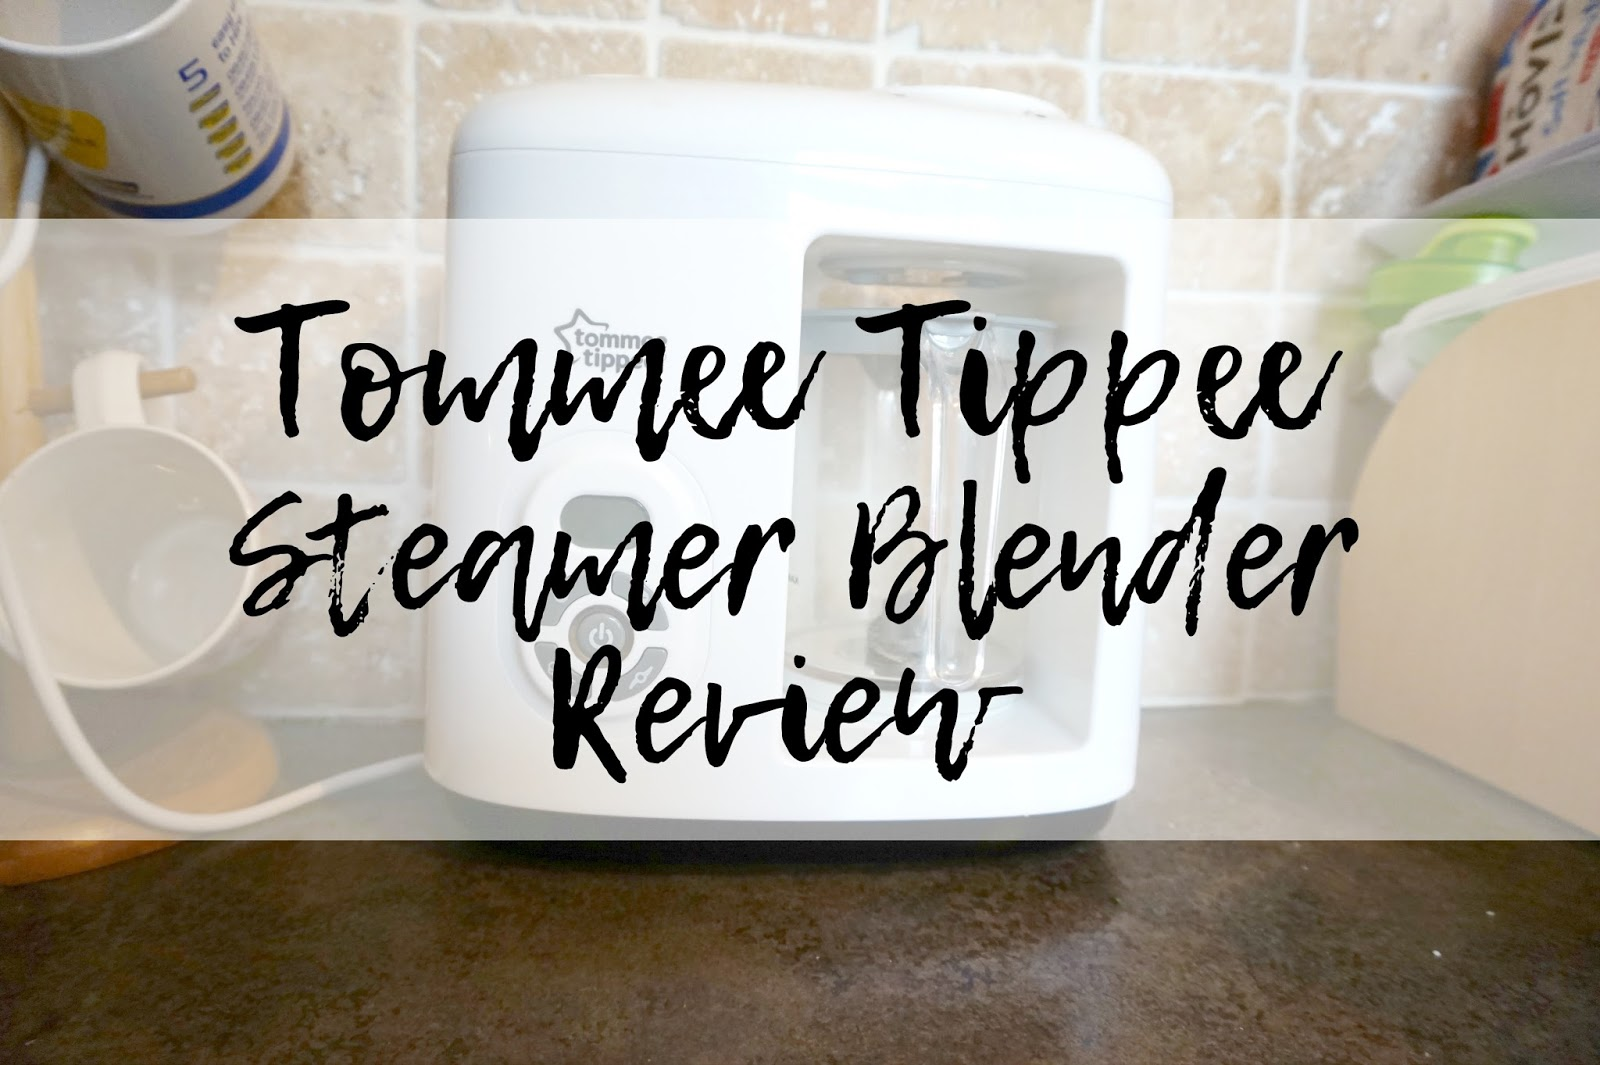 Tommee Tippee Steamer Blender Review Life As Mum